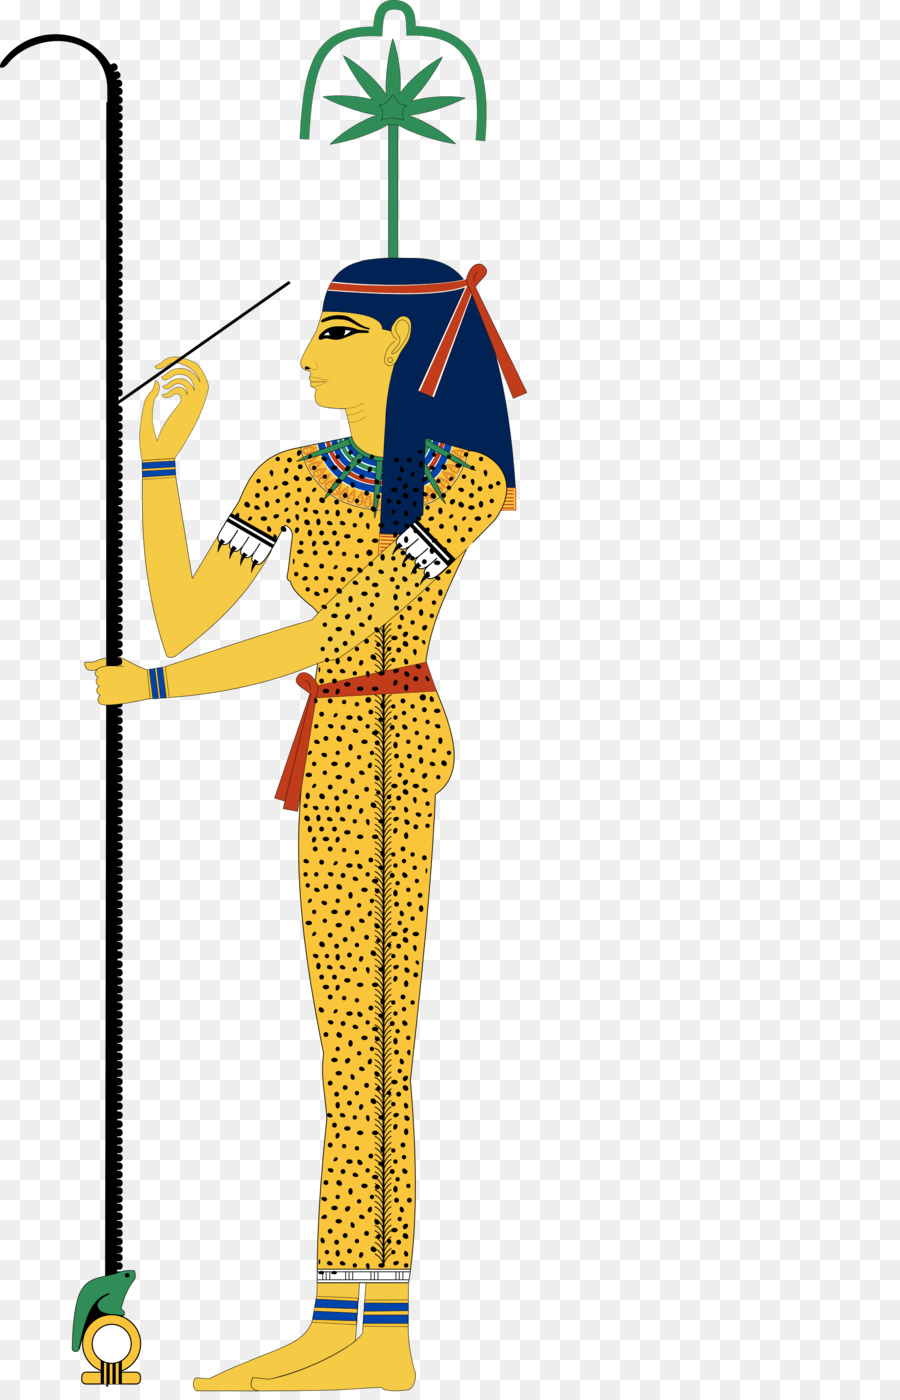 Egyptian Gods clipart.